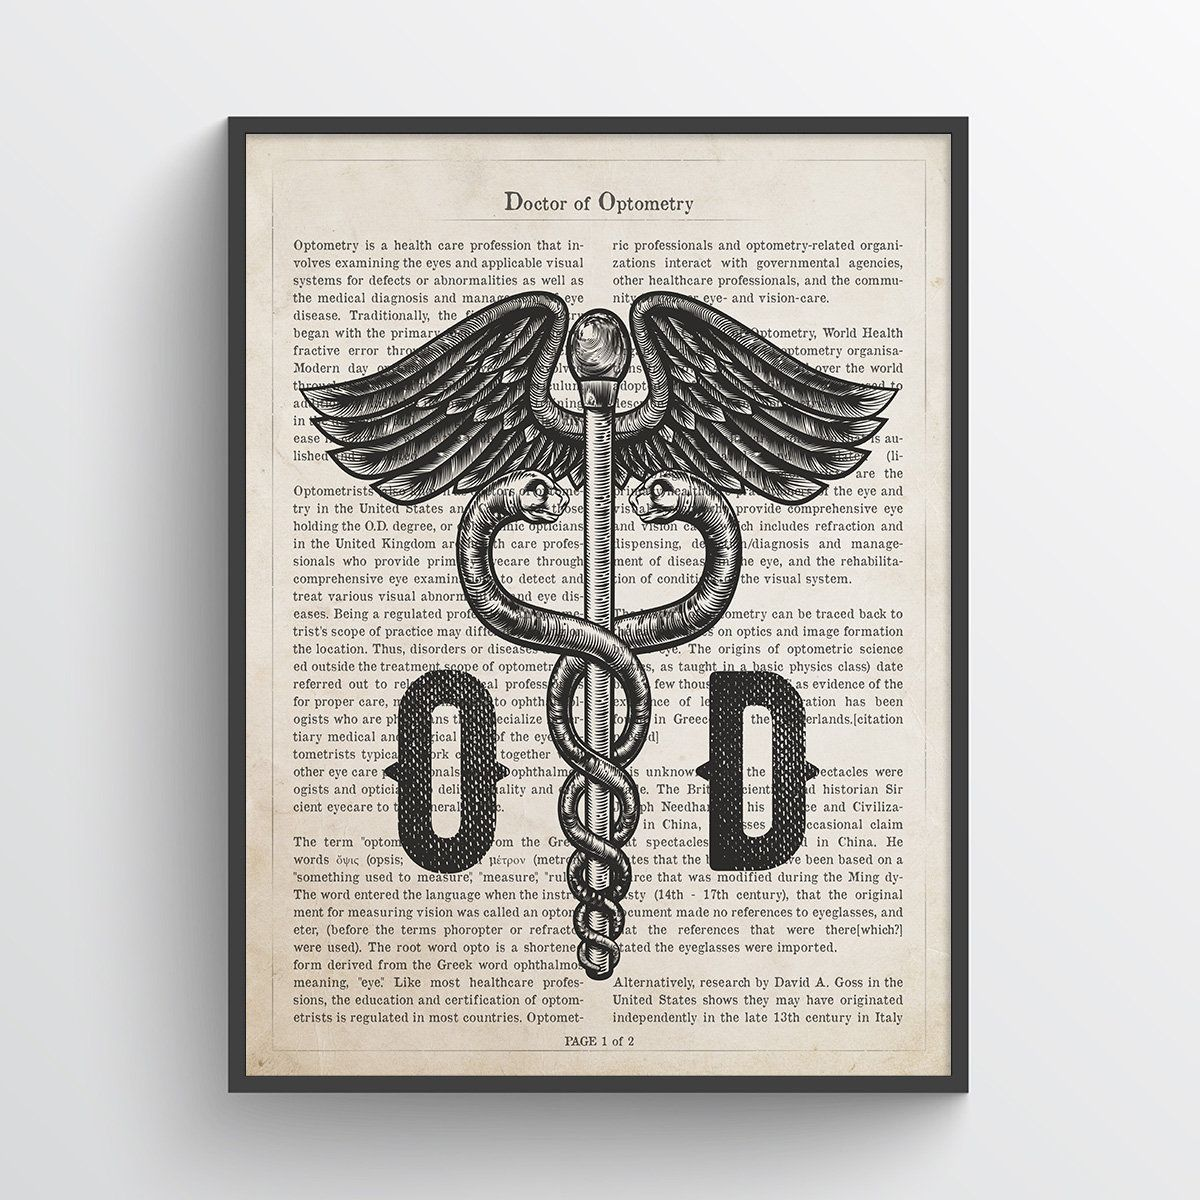 Doctor of Optometry Gift, Optometrist Gift, OD Decor, Doctors Office Decor, OD Graduation Gift, Medical Print, Eye Care Professional